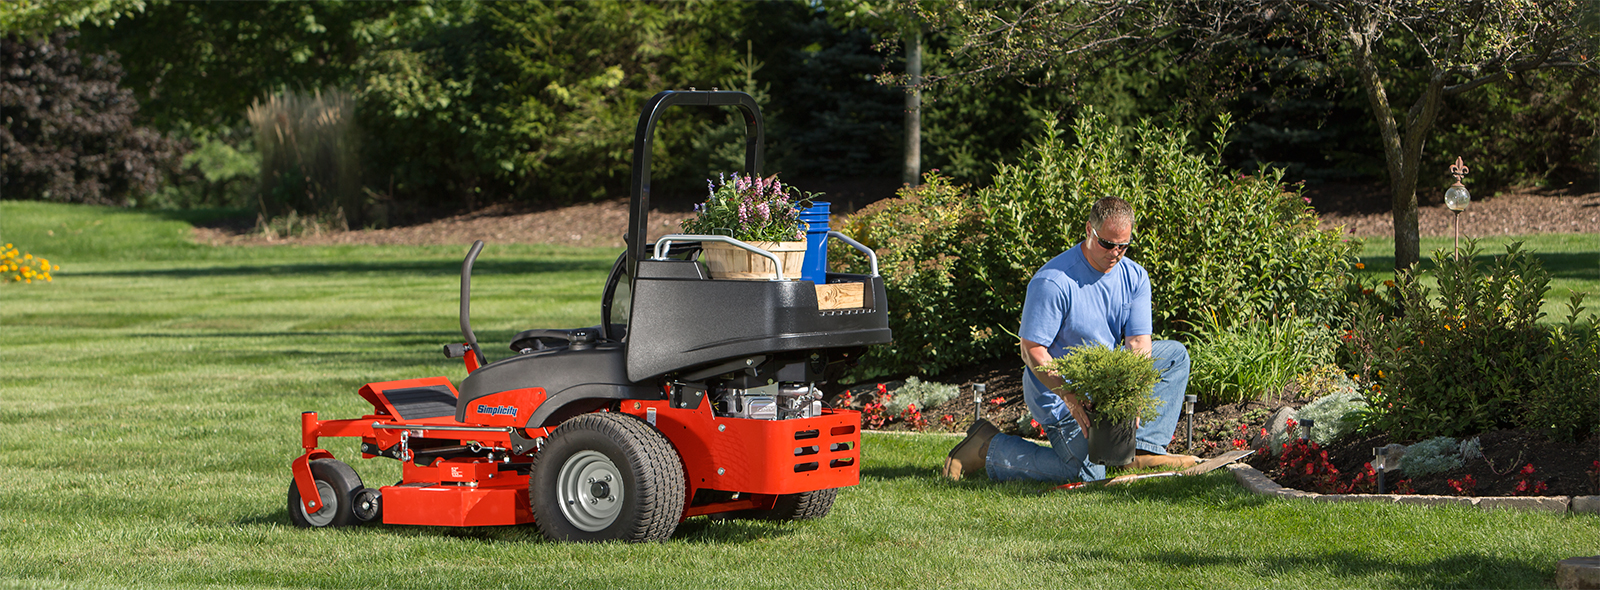 Man landscaping with Simplicity zero turn mower